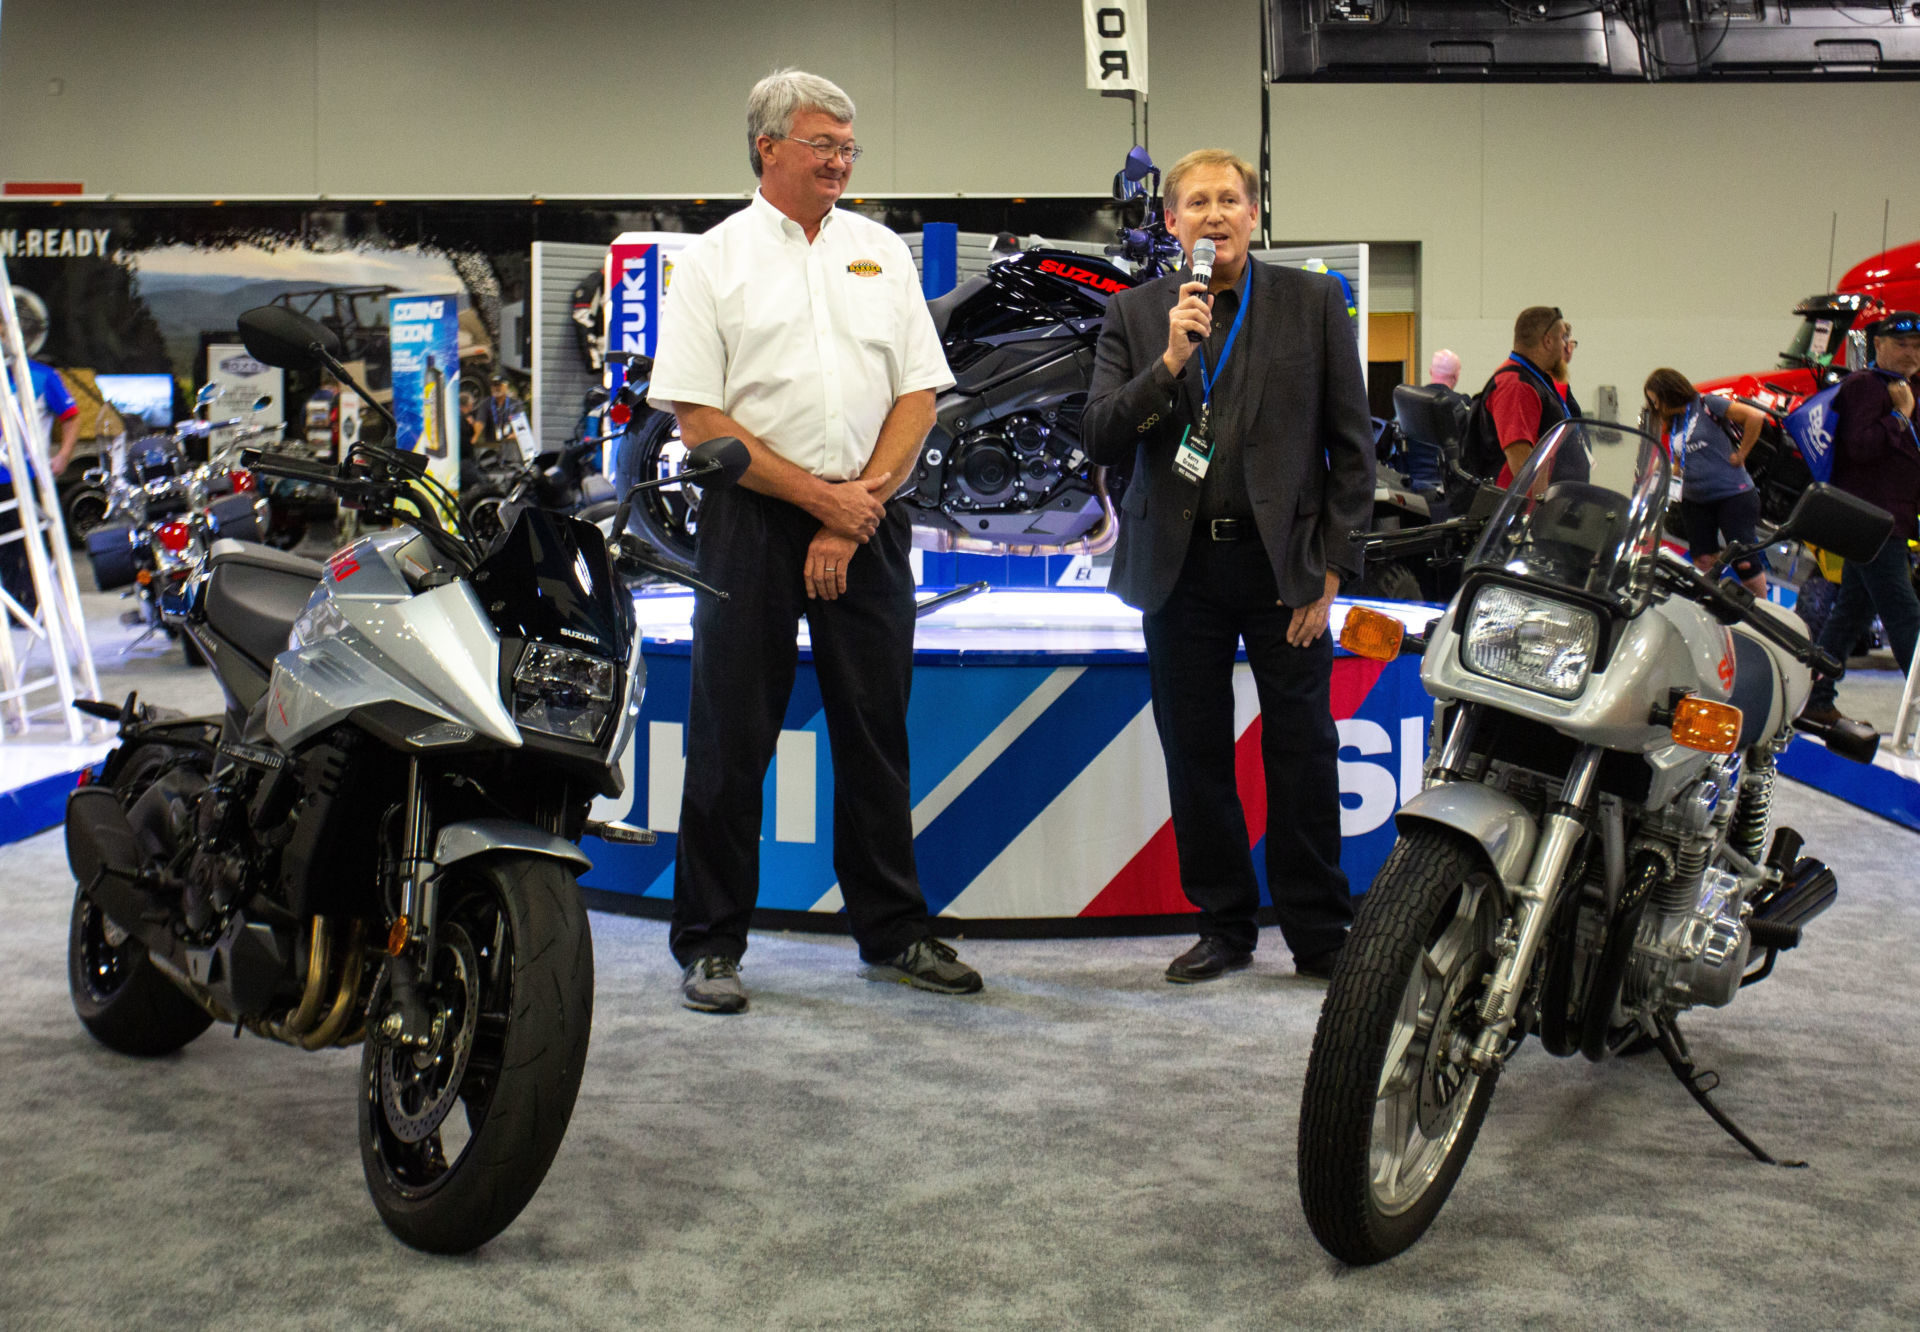 Barber Museum's Jeff Ray (left) and Suzuki's Kerry Graeber (right) with the original 1982 GSX1100S Katana and the 2020 KATANA in Metallic Mystic Silver and Solid Black. Photo courtesy of Suzuki Motor of America., Inc.